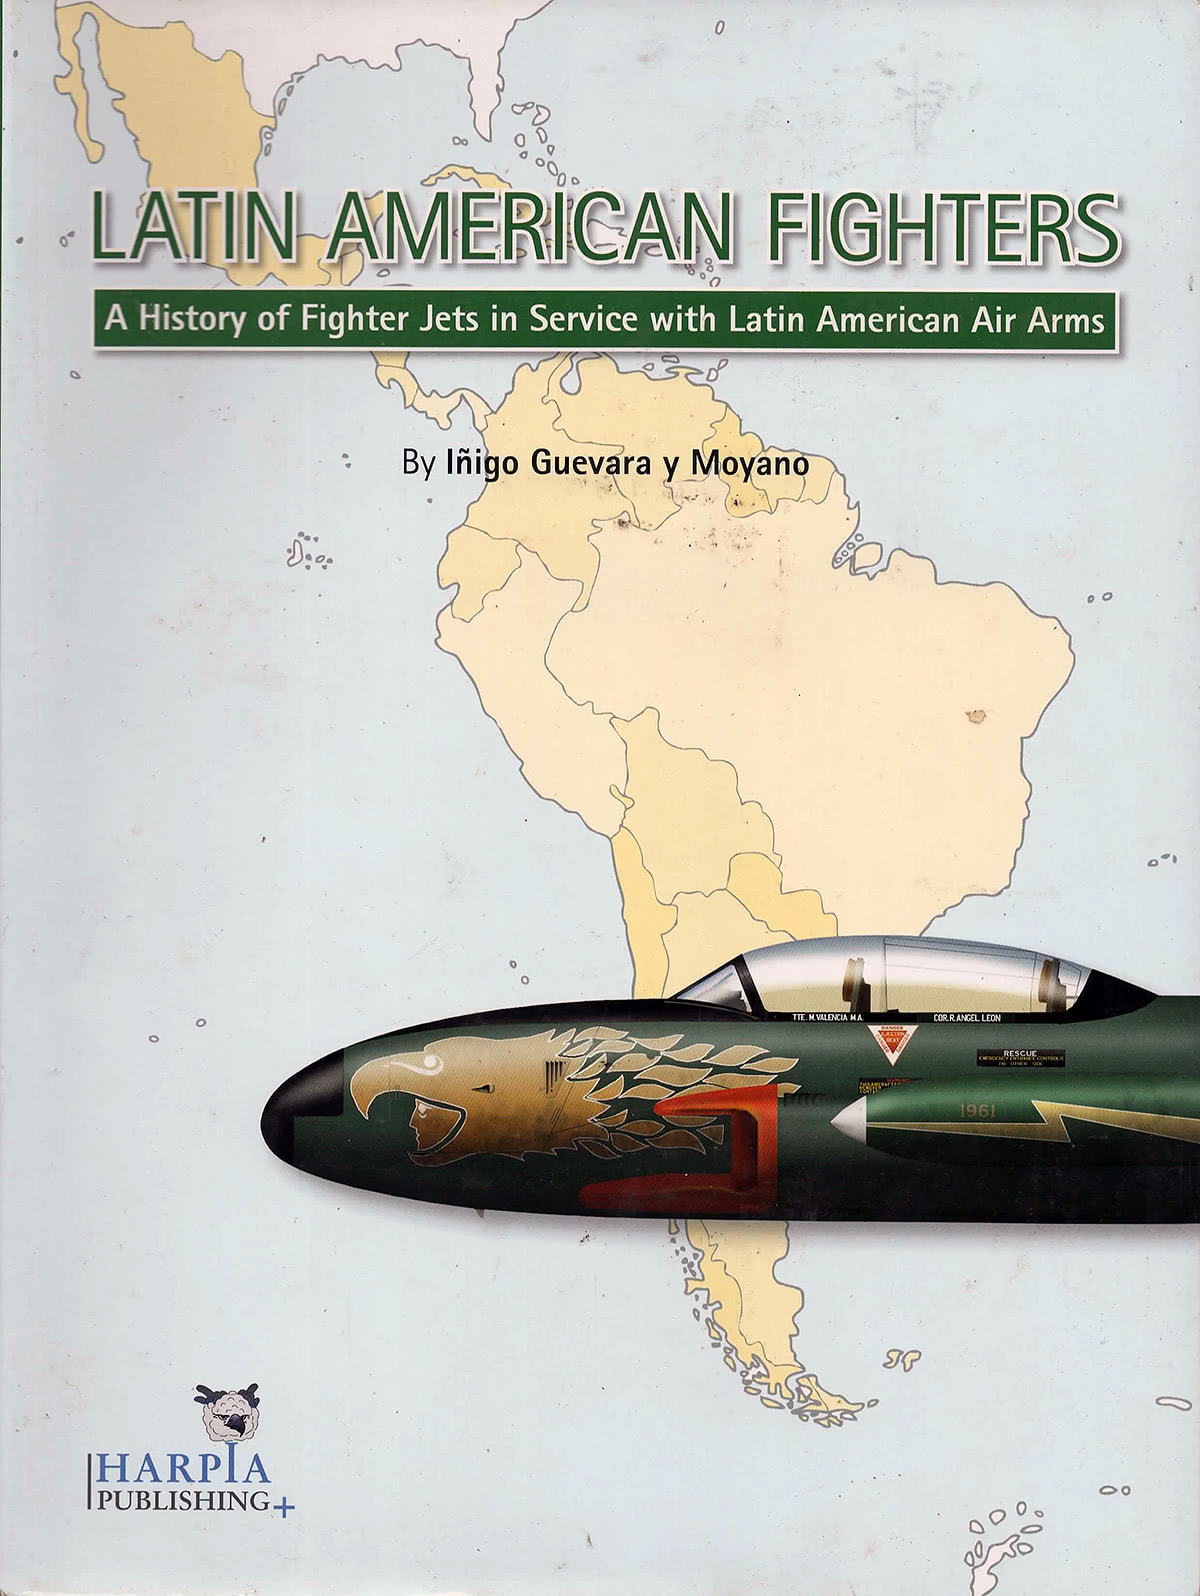 Latin American Fighters.